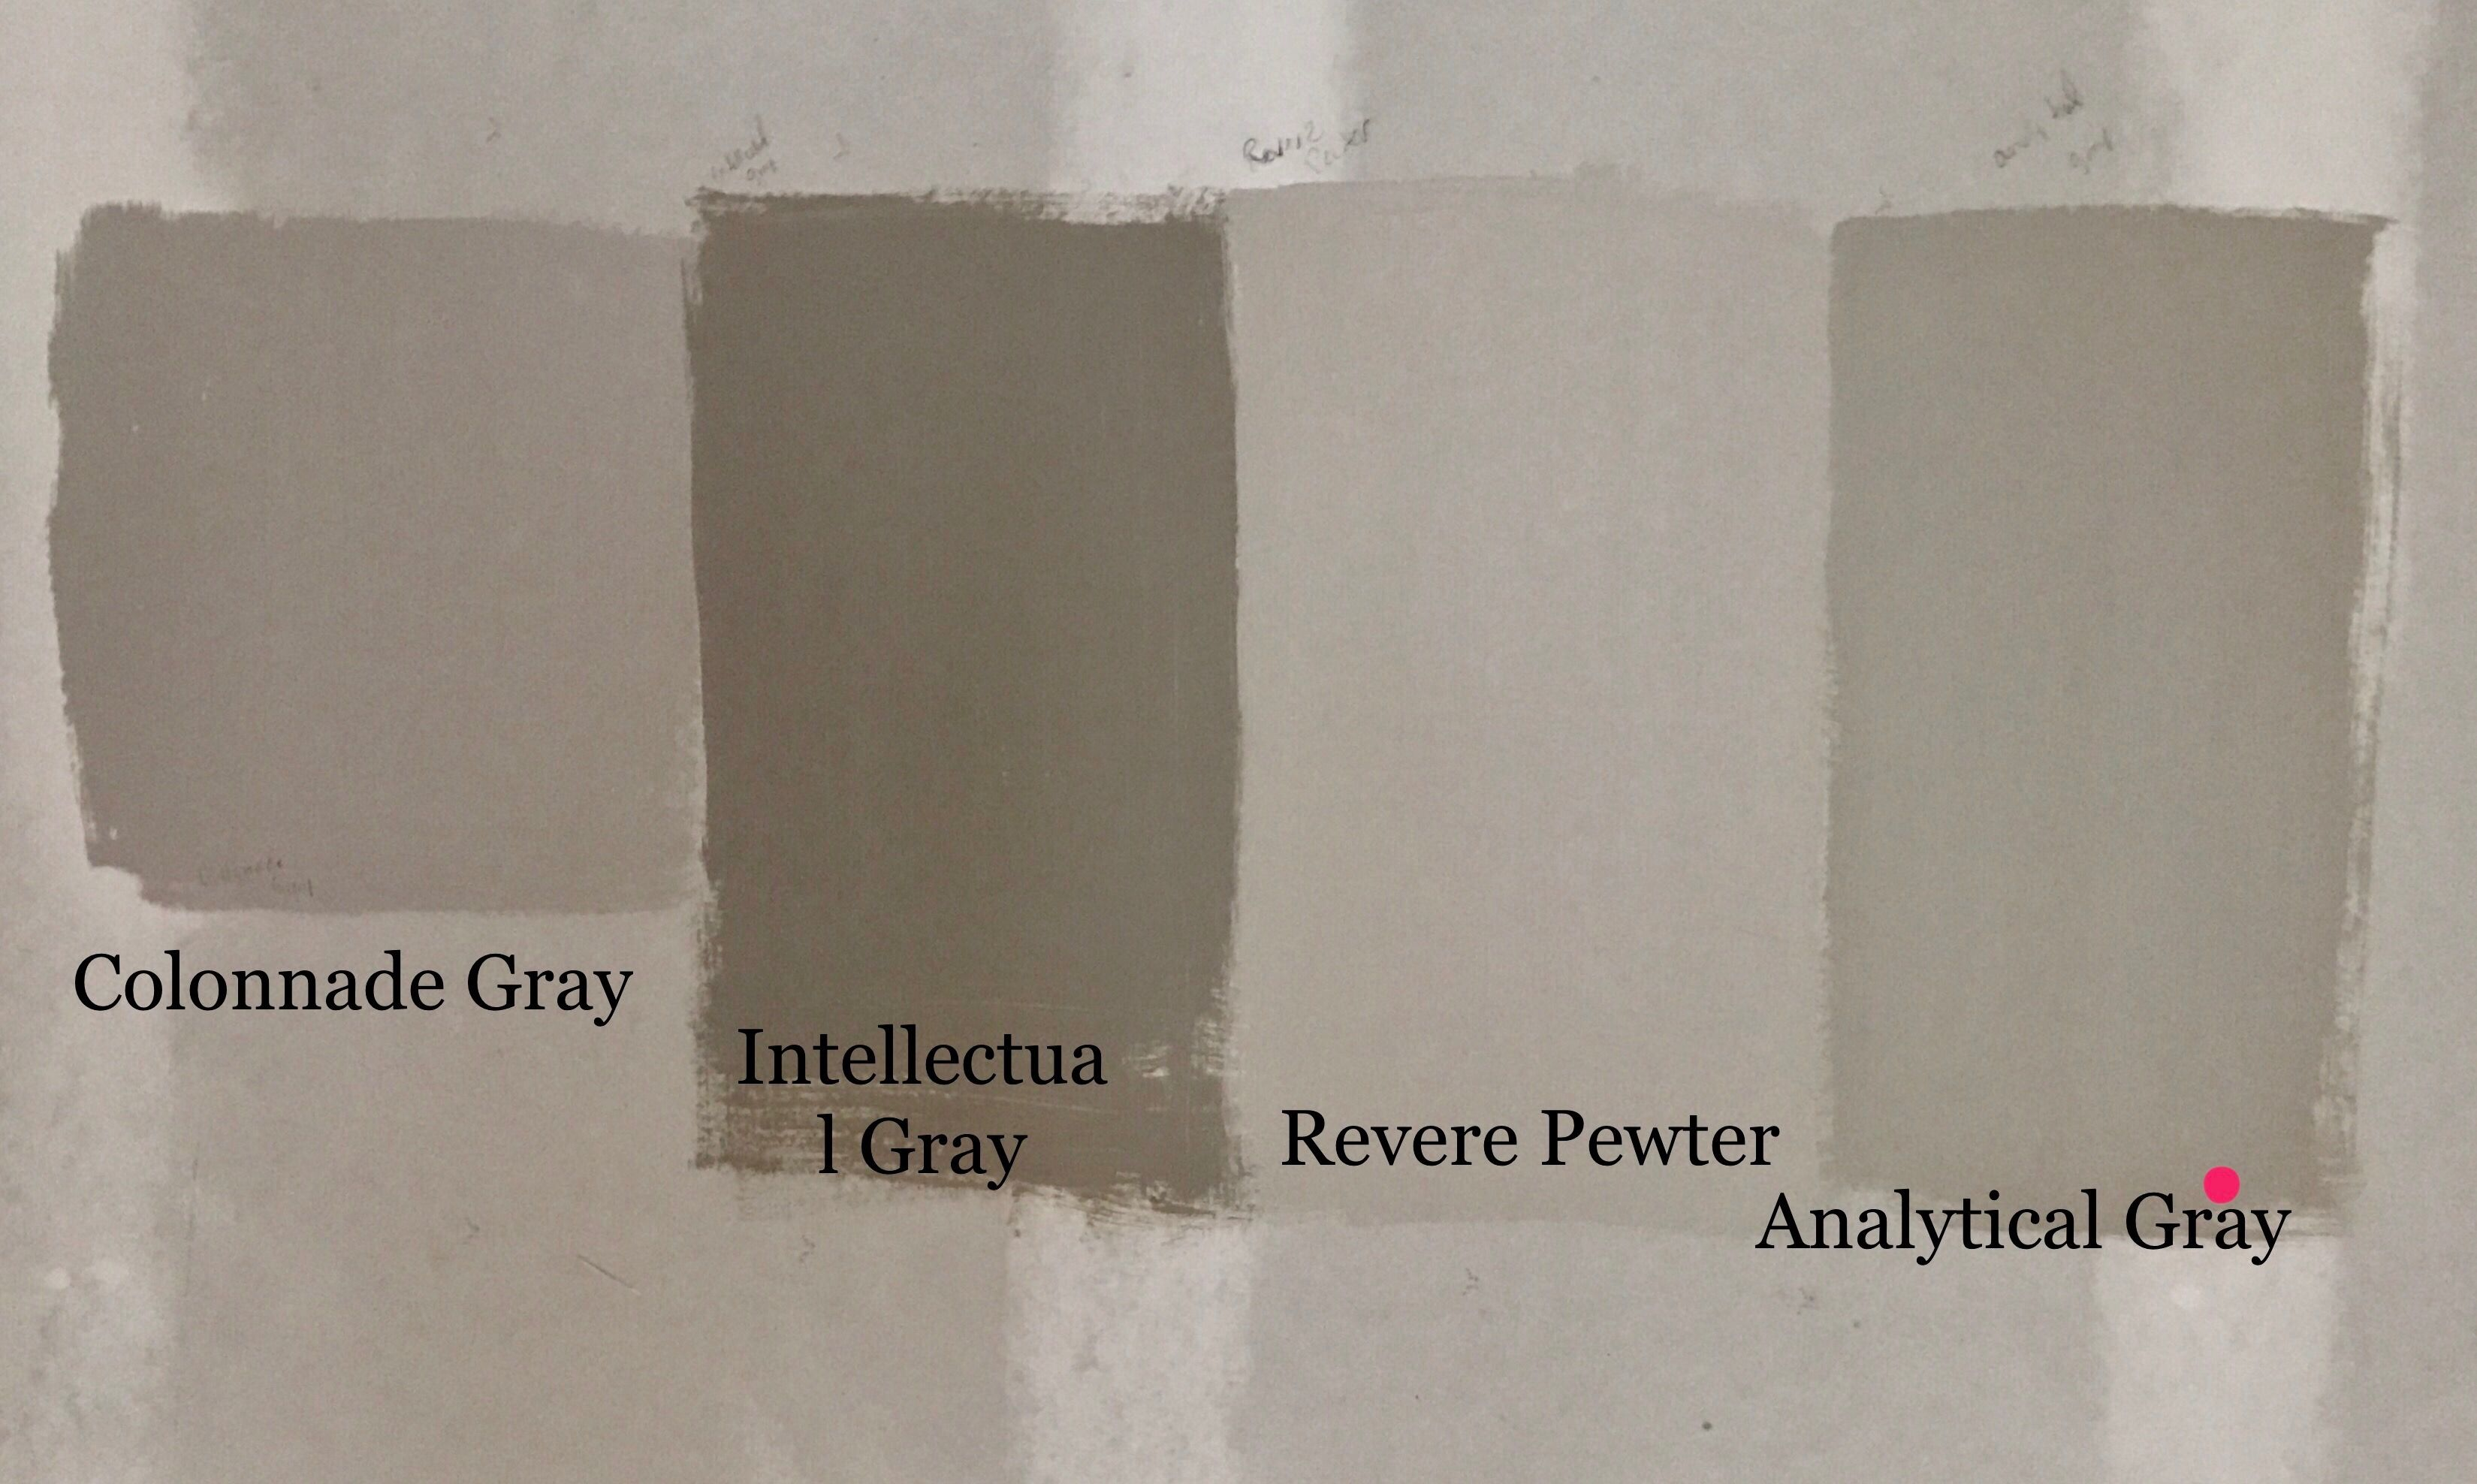 Sw Colonnade Gray Intellectual Gray Revere Pewter Analytical Gray Sherw Sherwin Williams Revere Pewter Sherwin Williams Gray Exterior Paint Colors For House